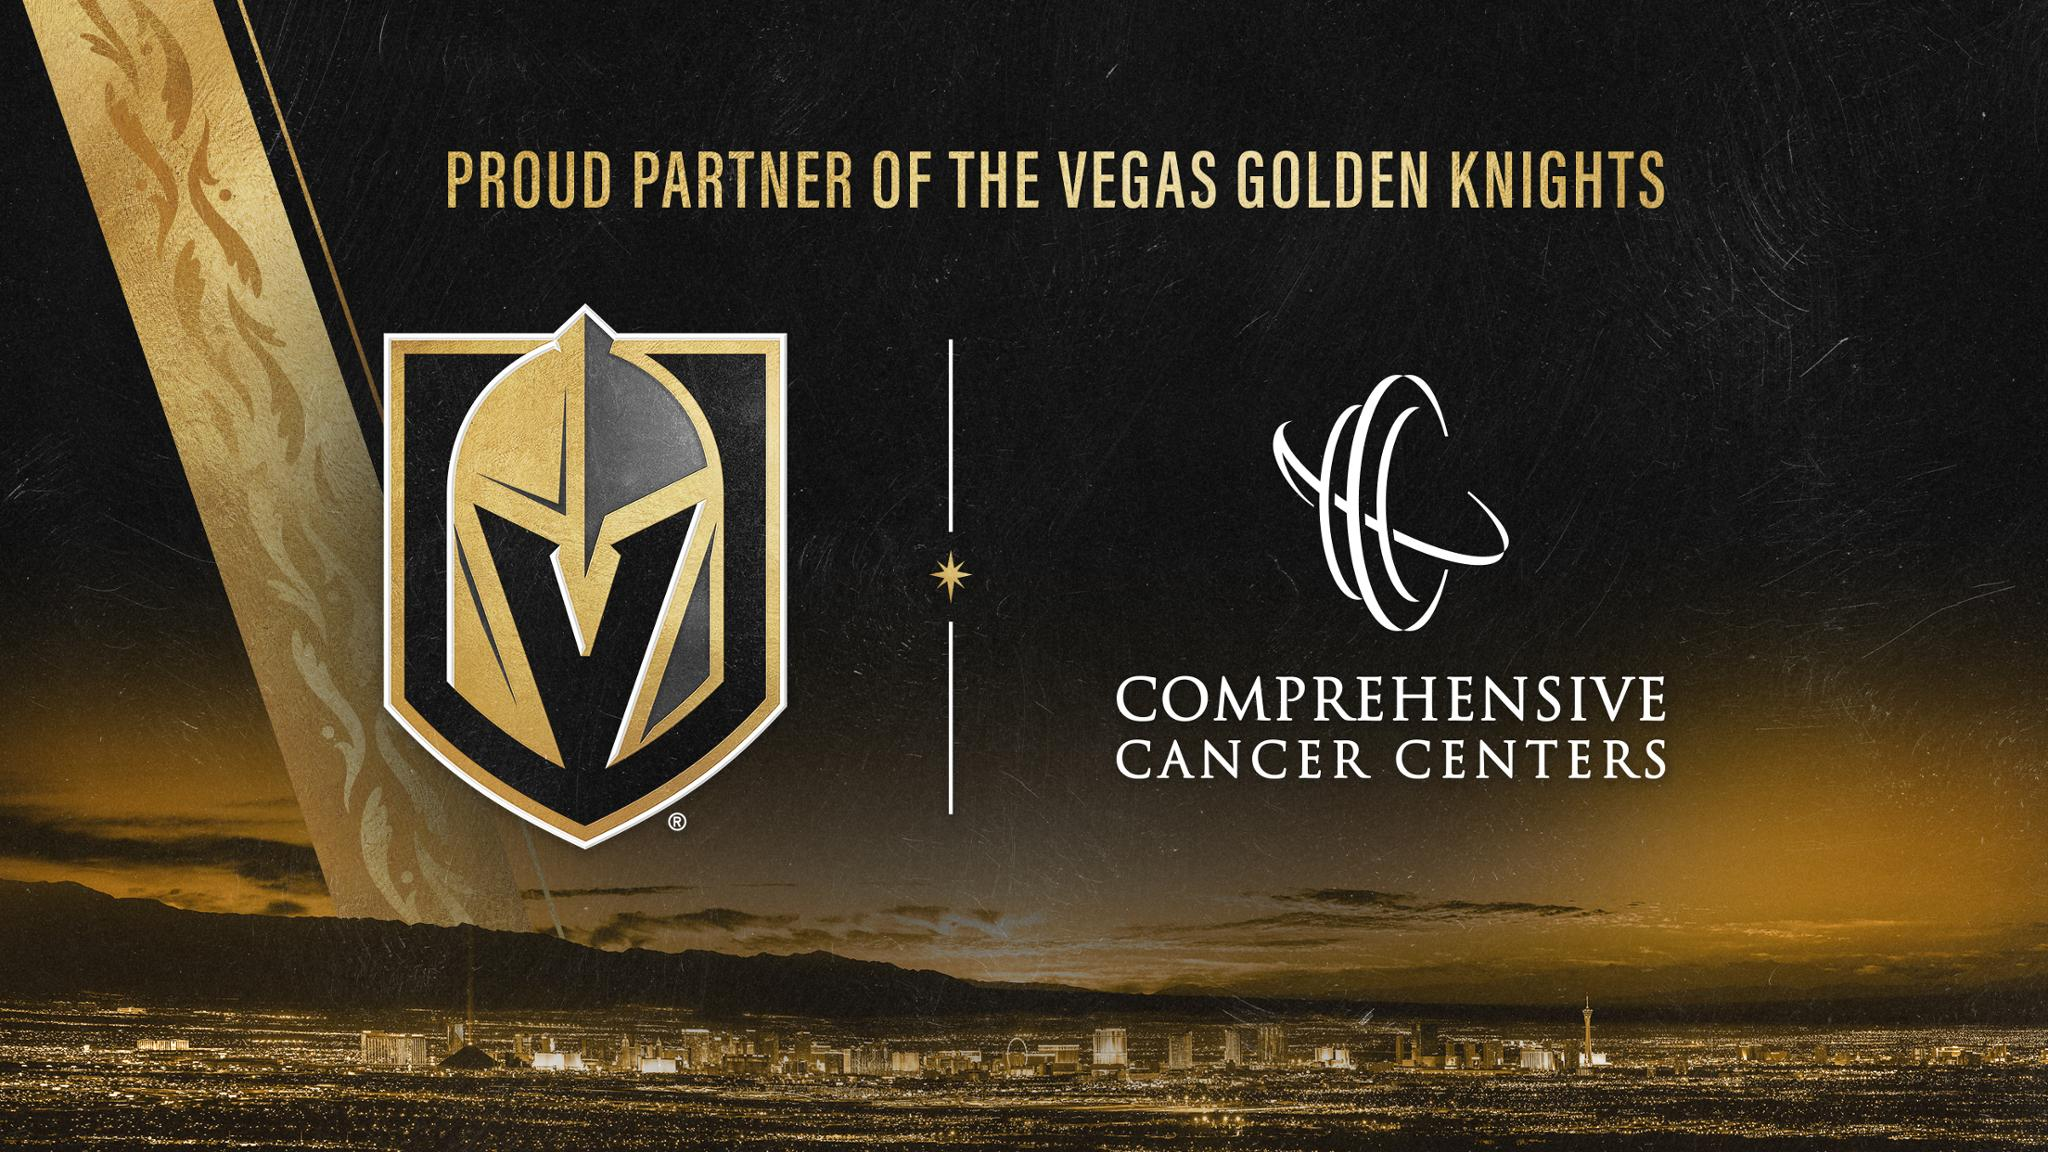 VGK Announce Partnership With Comprehensive Cancer Centers Of Nevada